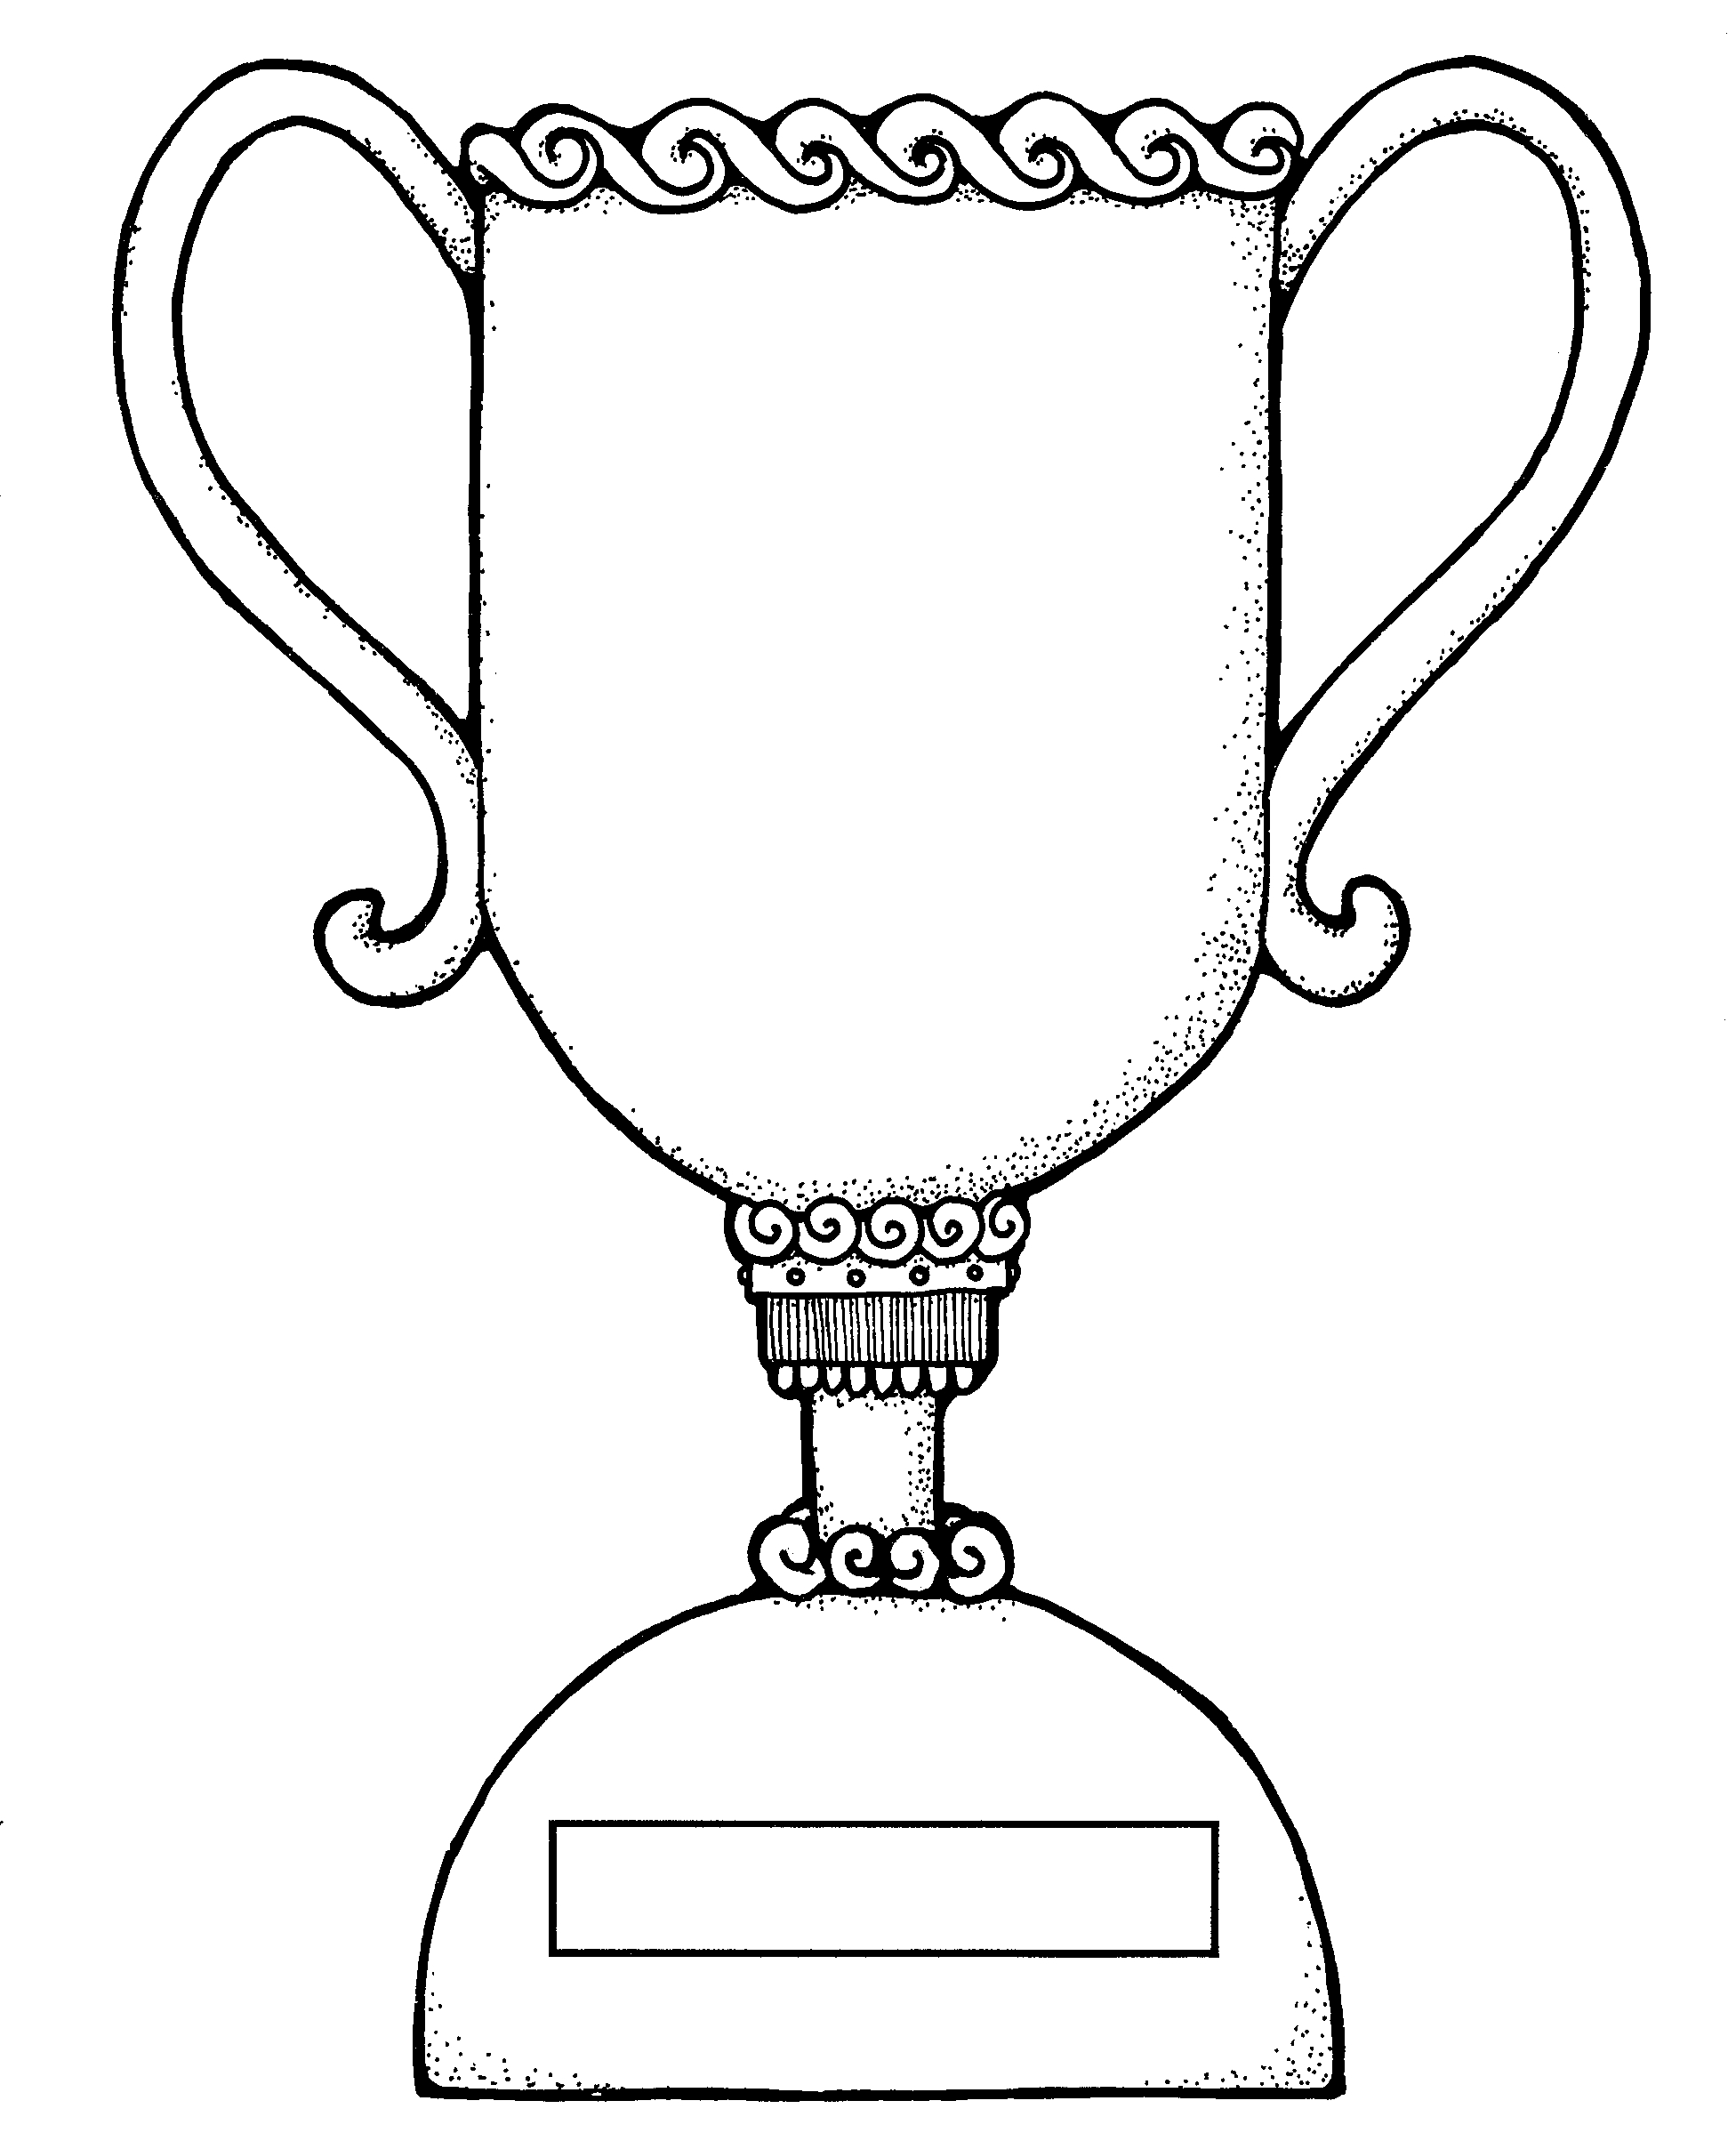 Trophy clipart drawing. Drawings of trophies colouring